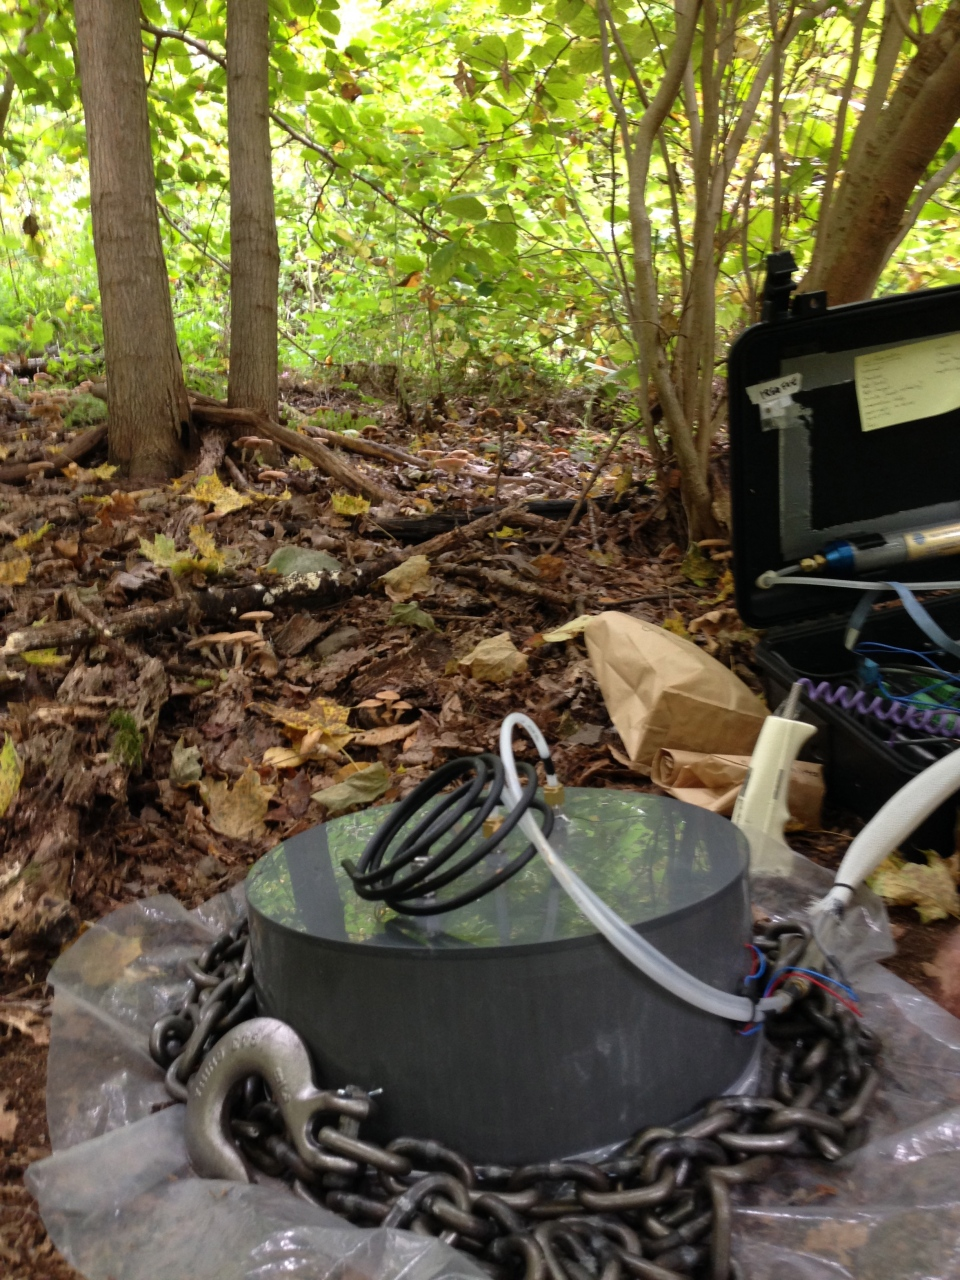 Equipment to measure soil respiration